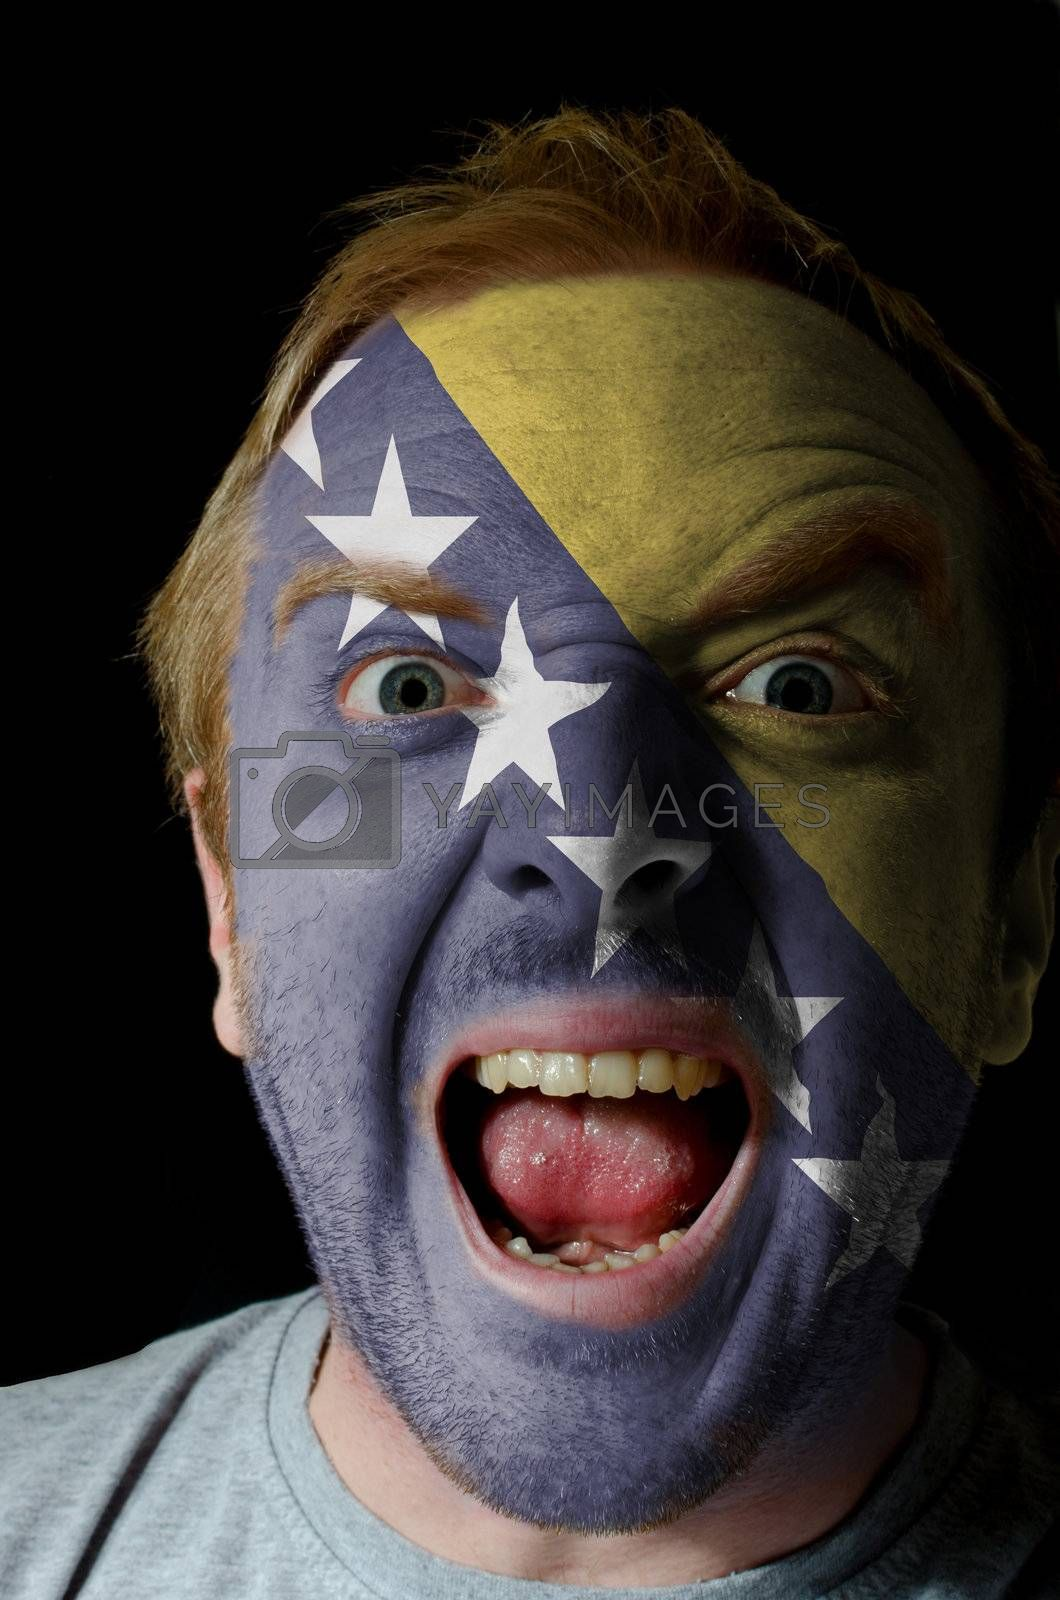 Low key portrait of an angry man whose face is painted in colors of bosnian and hezegovinian flag